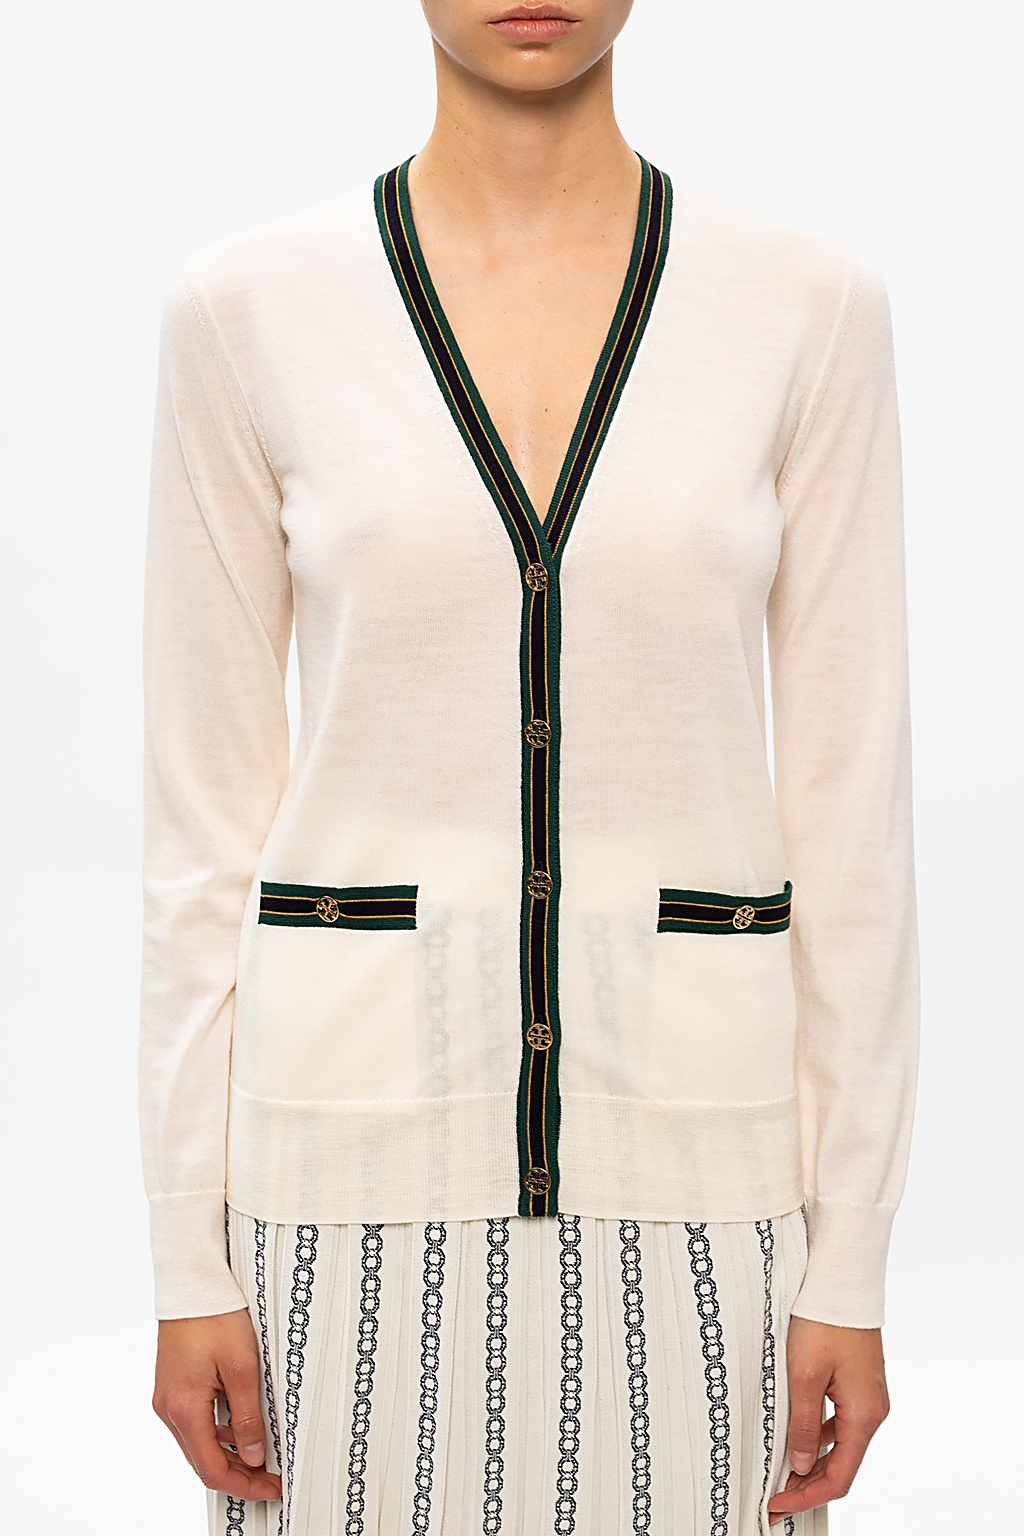 Tory Burch Cardigan with pockets